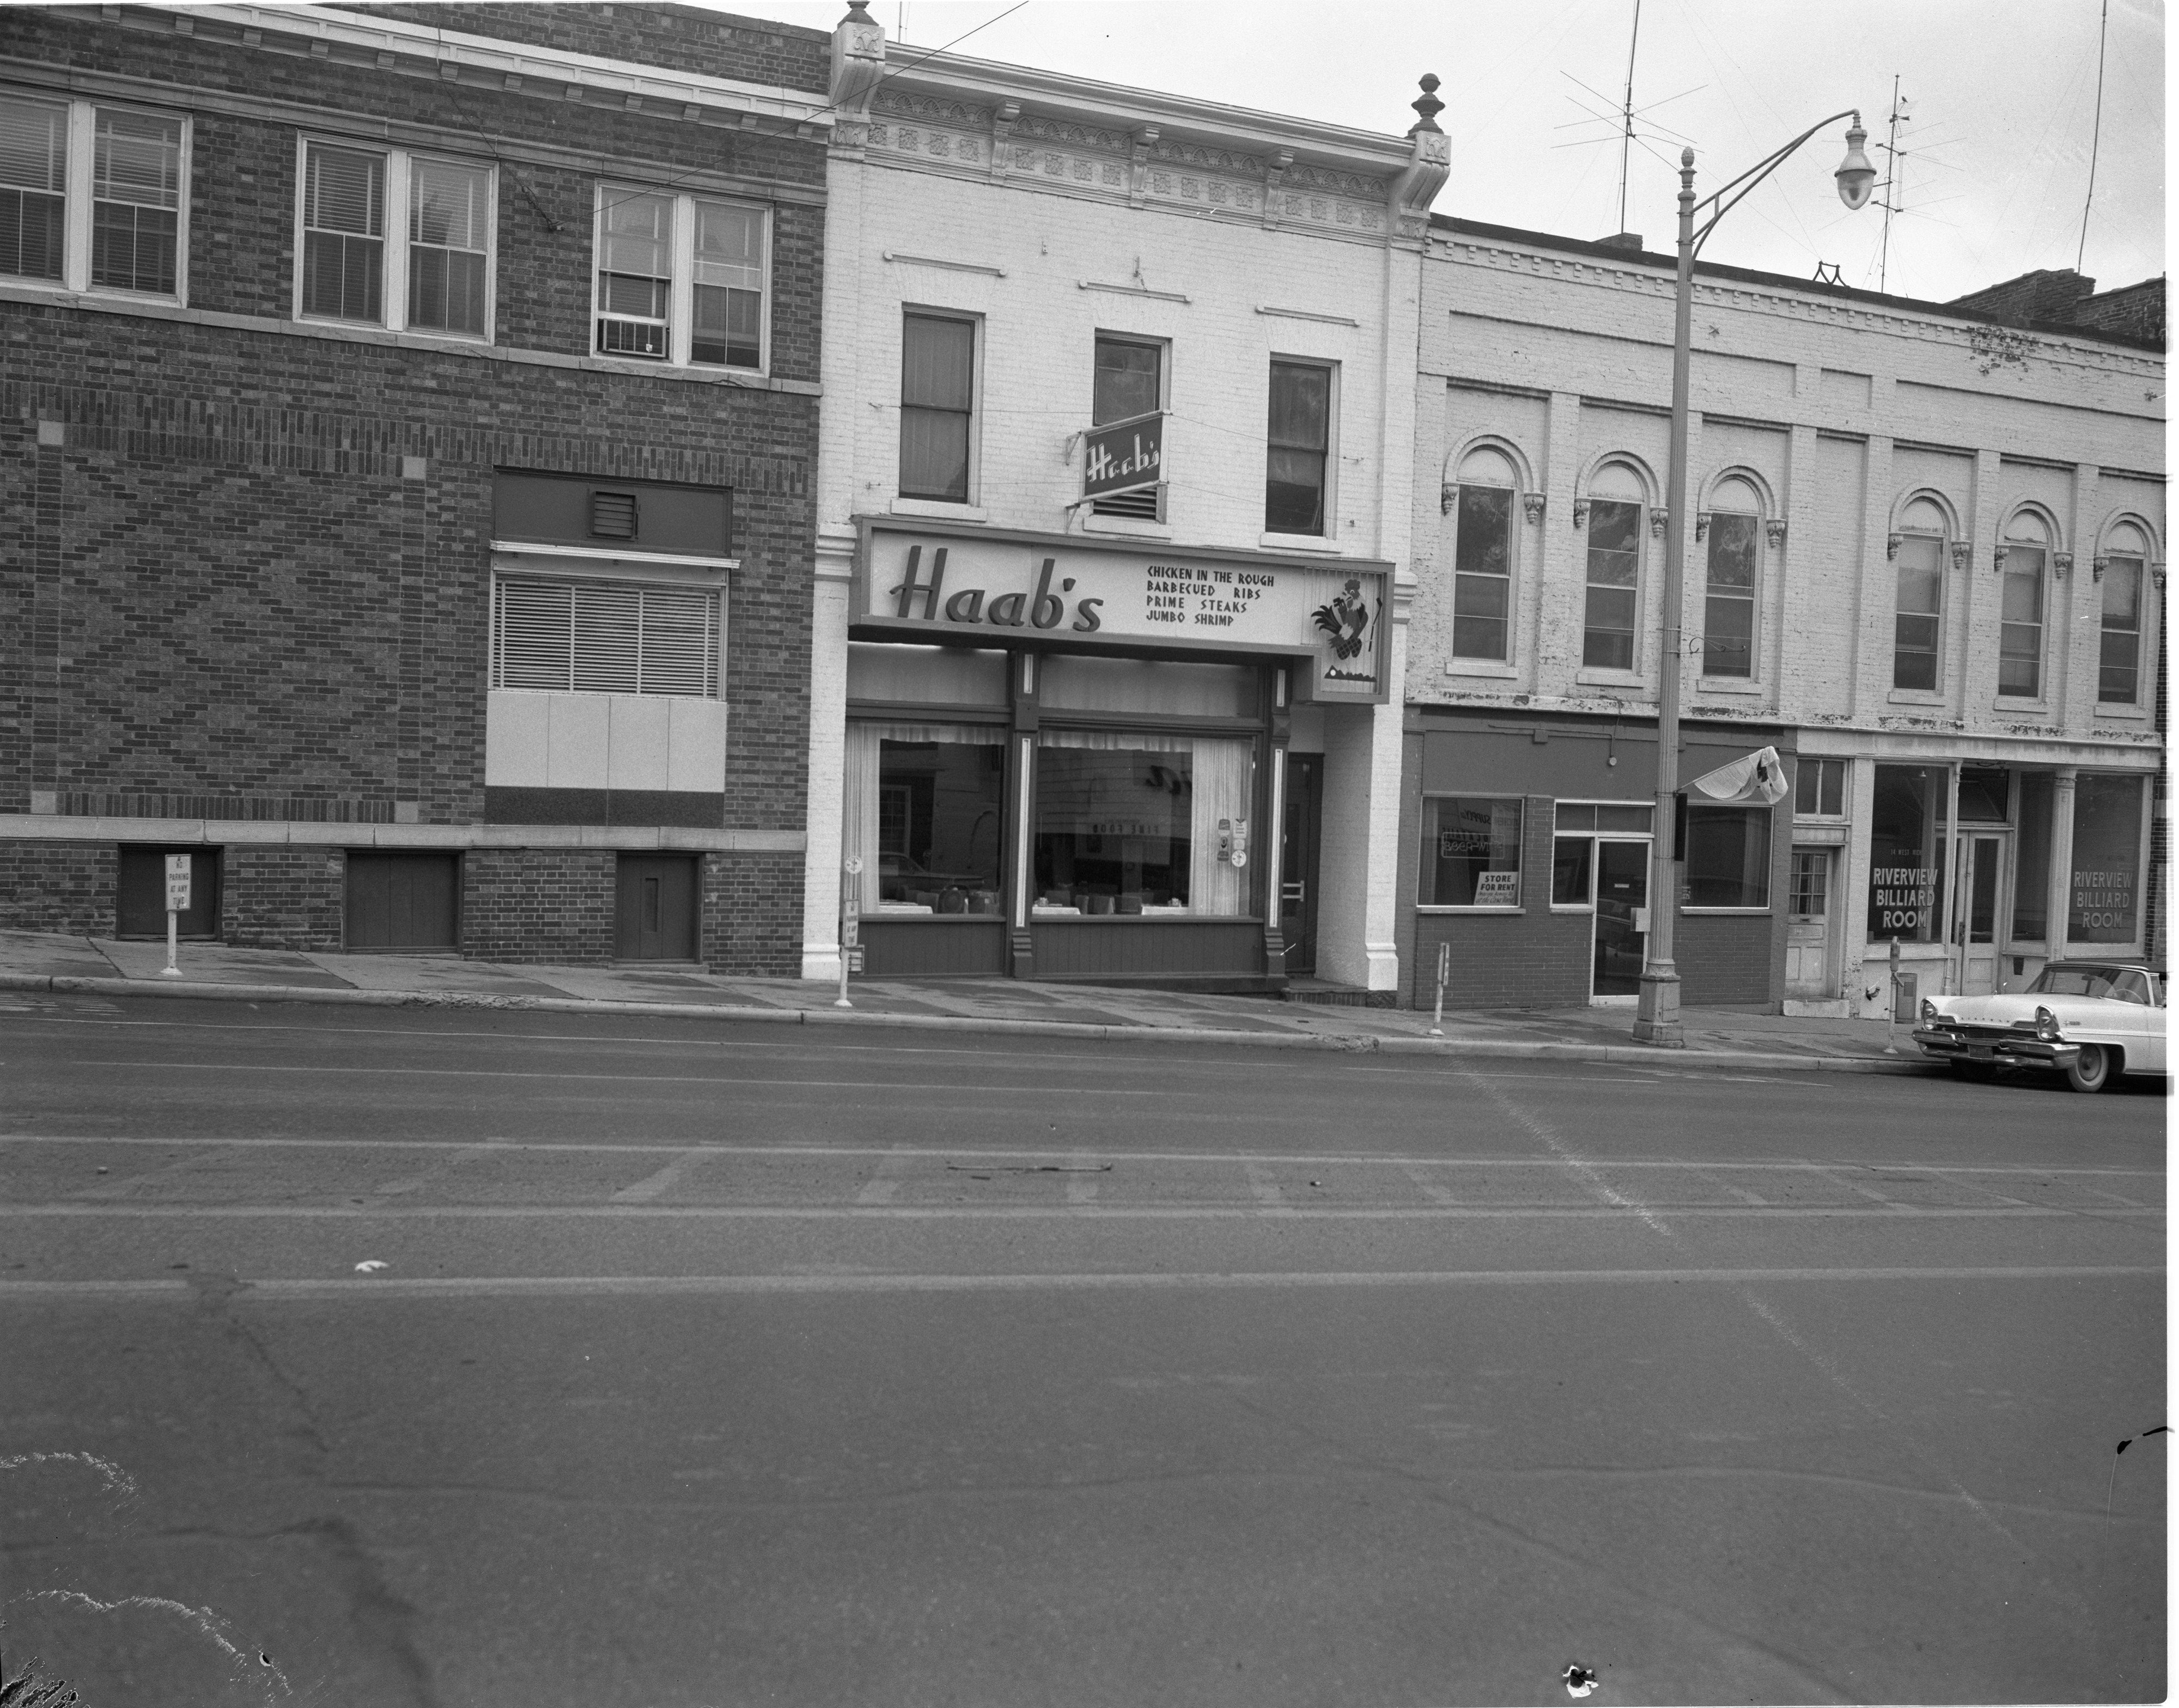 Haab's Restaurant, 18 W. Michigan Avenue, Ypsilanti - November 1961 image